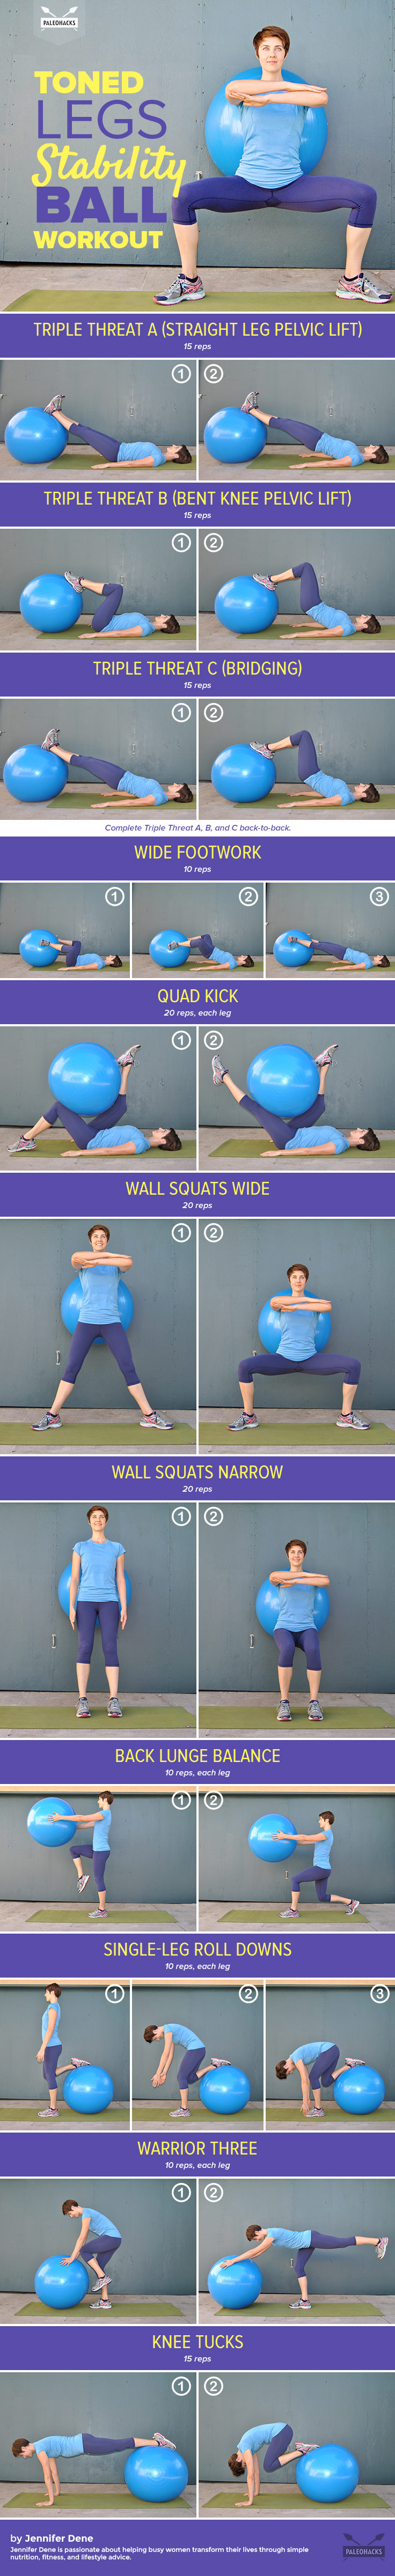 Stability ball leg workout